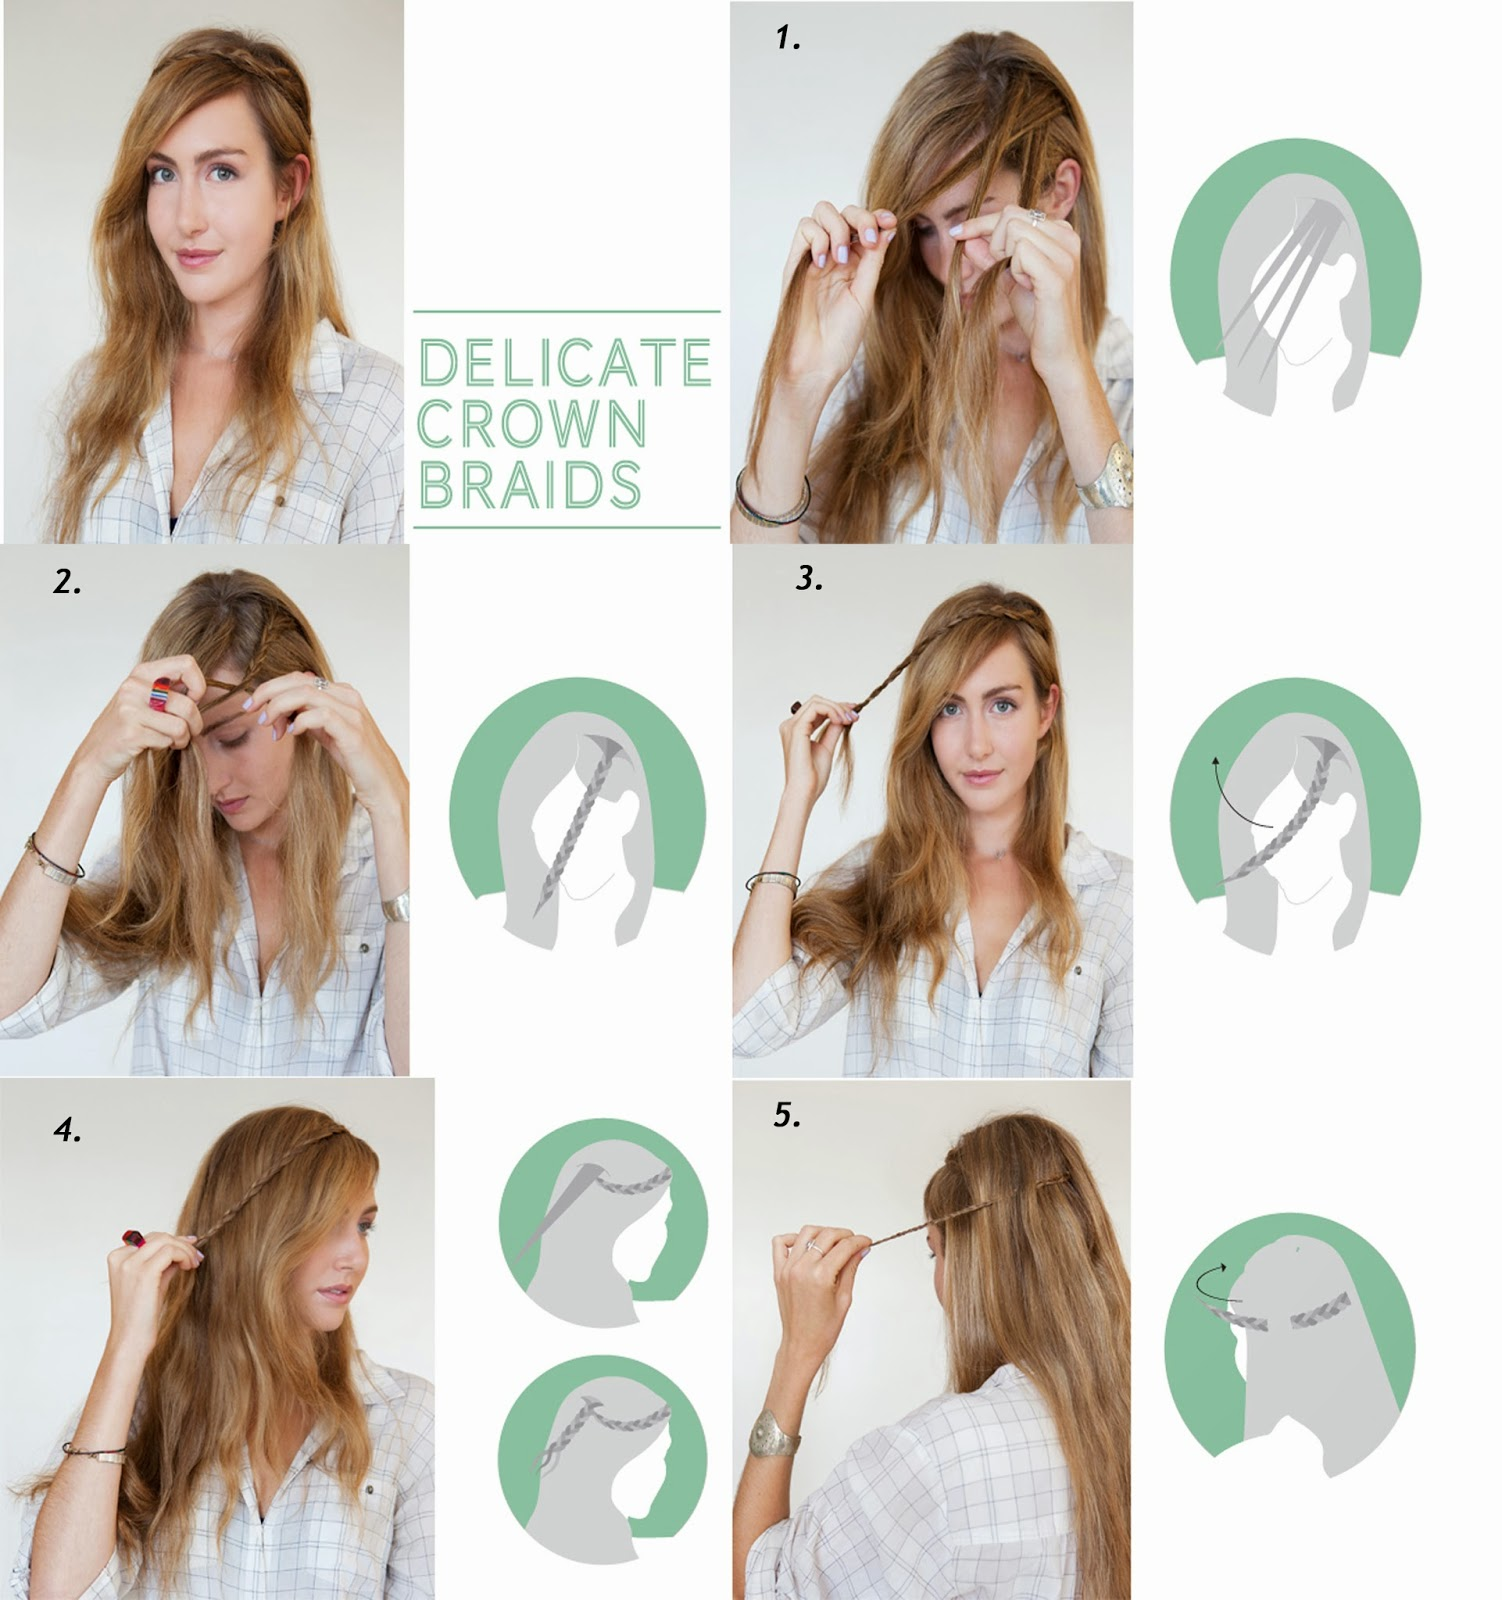 acconciature trecce tutorial trecce hairstyle braids how to make braids crown braids trecce a corona trecce a spina di pesce trecce laterali tendenze capelli autunno inverno 2014 2015 fashion blog italiani fashion blogger italiane mariafelicia magno mariafelicia magno fashion blogger colorblock by felym italian fashion bloggers  acconciature trecce, tutorial trecce, hairstyle braids, how to make braids, crown braids, trecce a corona, trecce a spina di pesce, trecce laterali, tendenze capelli autunno inverno 2014 2015, fashion blog italiani, fashion blogger italiane, mariafelicia magno, mariafelicia magno fashion blogger, colorblock by felym, italian fashion bloggers fashion blog italiani fashion blogger italiane tendenze capelli trecce autunno inverno 2014 2015 acconciature trecce treccia a spina di pesce trecce a corona trecce laterali mariafelicia magno mariafelicia magno fashion blogger come fare le trecce tutorial trecce